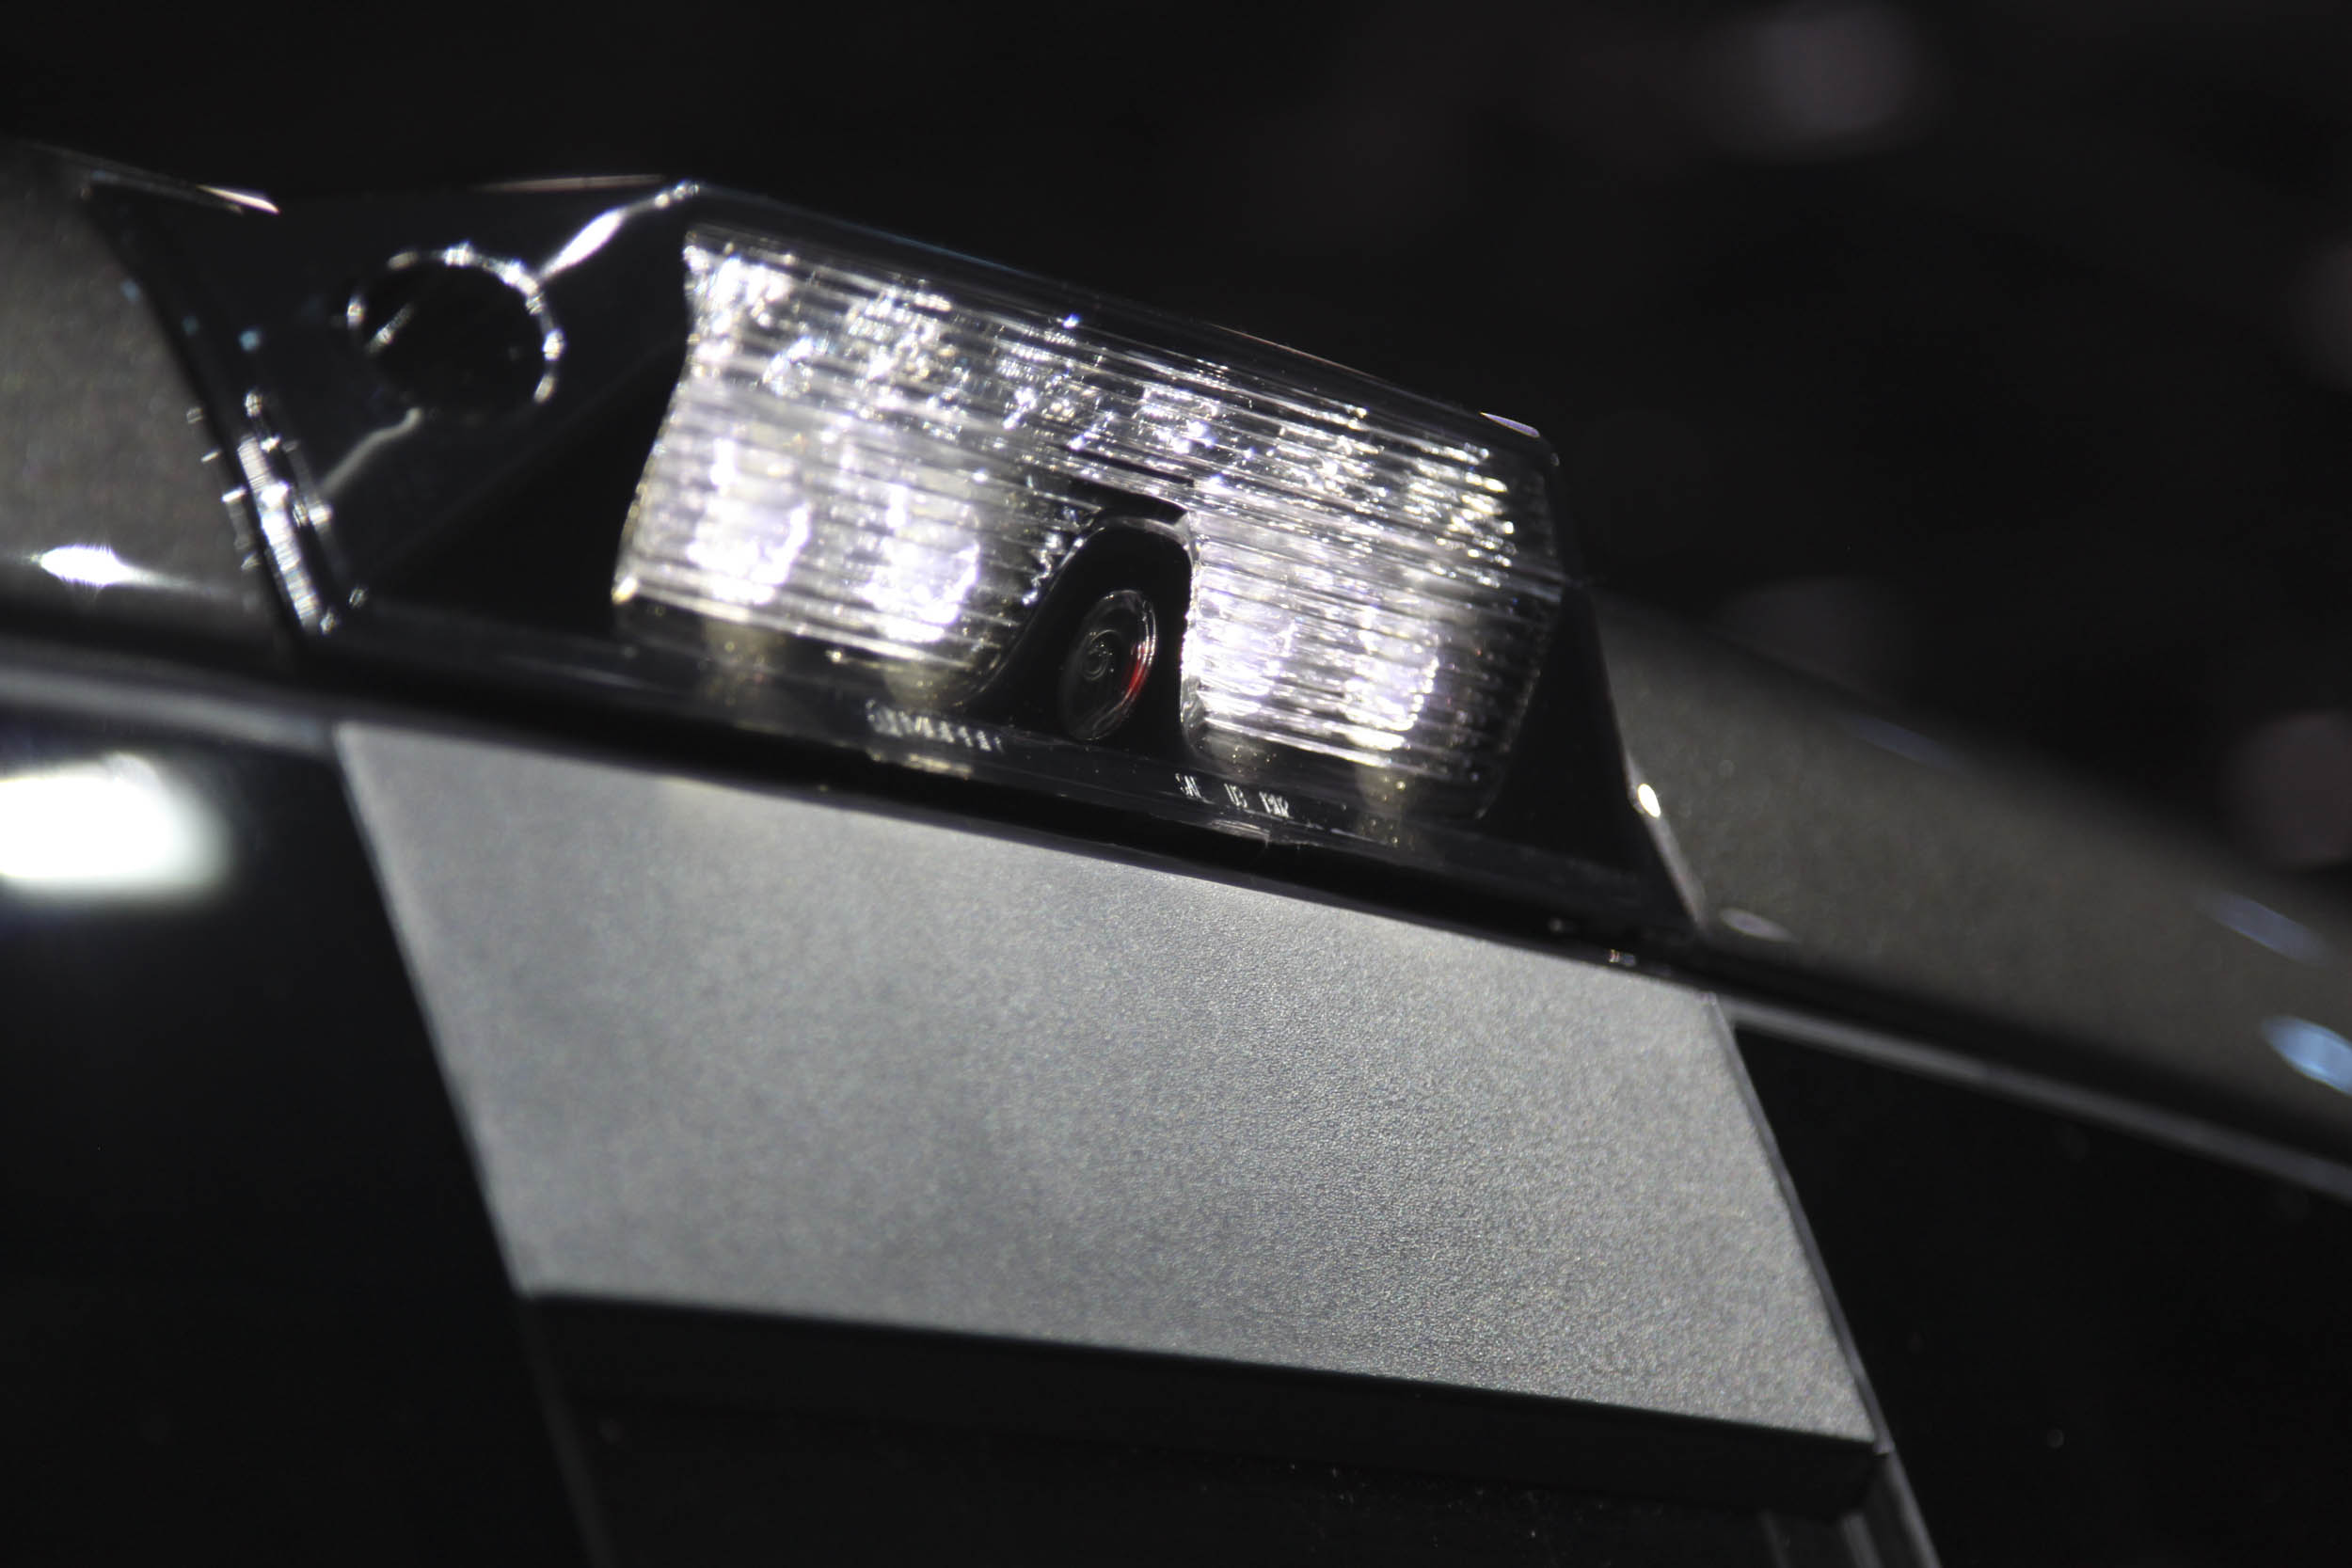 The small camera is mounted in the third brake light which also acts as a bed light.